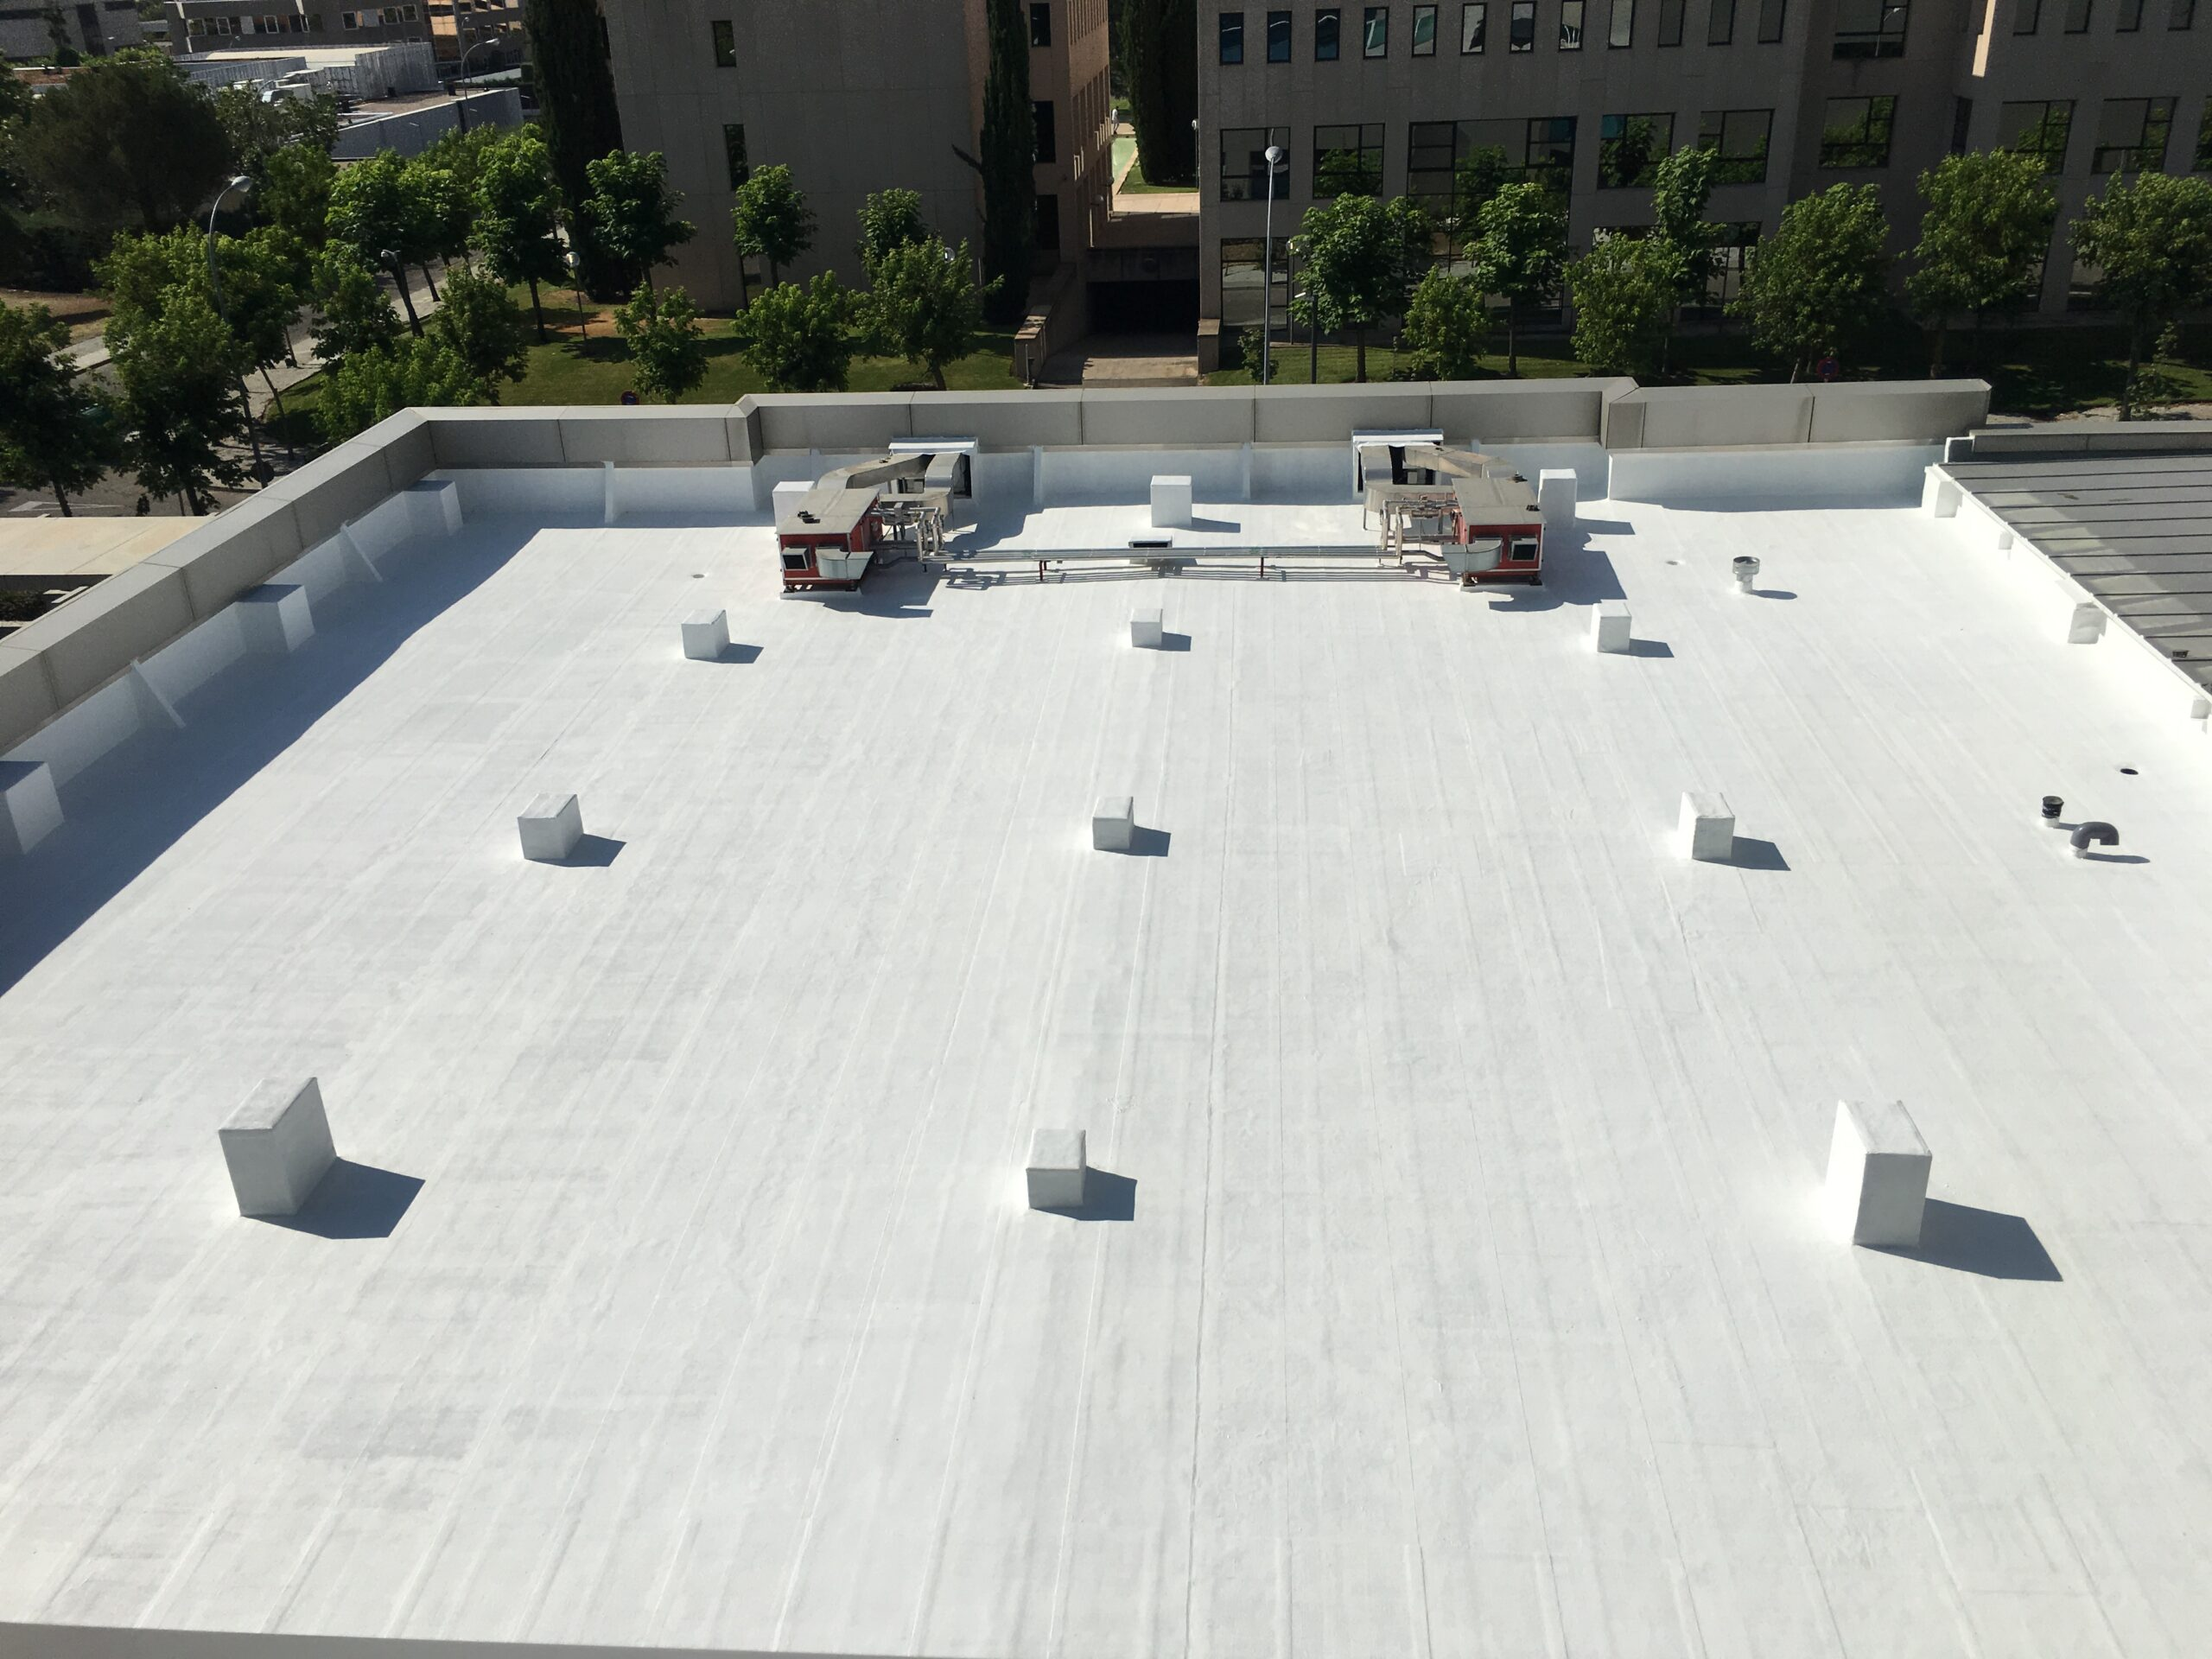 The technical aspect, thanks to which cooling the roof becomes much cheaper and easier